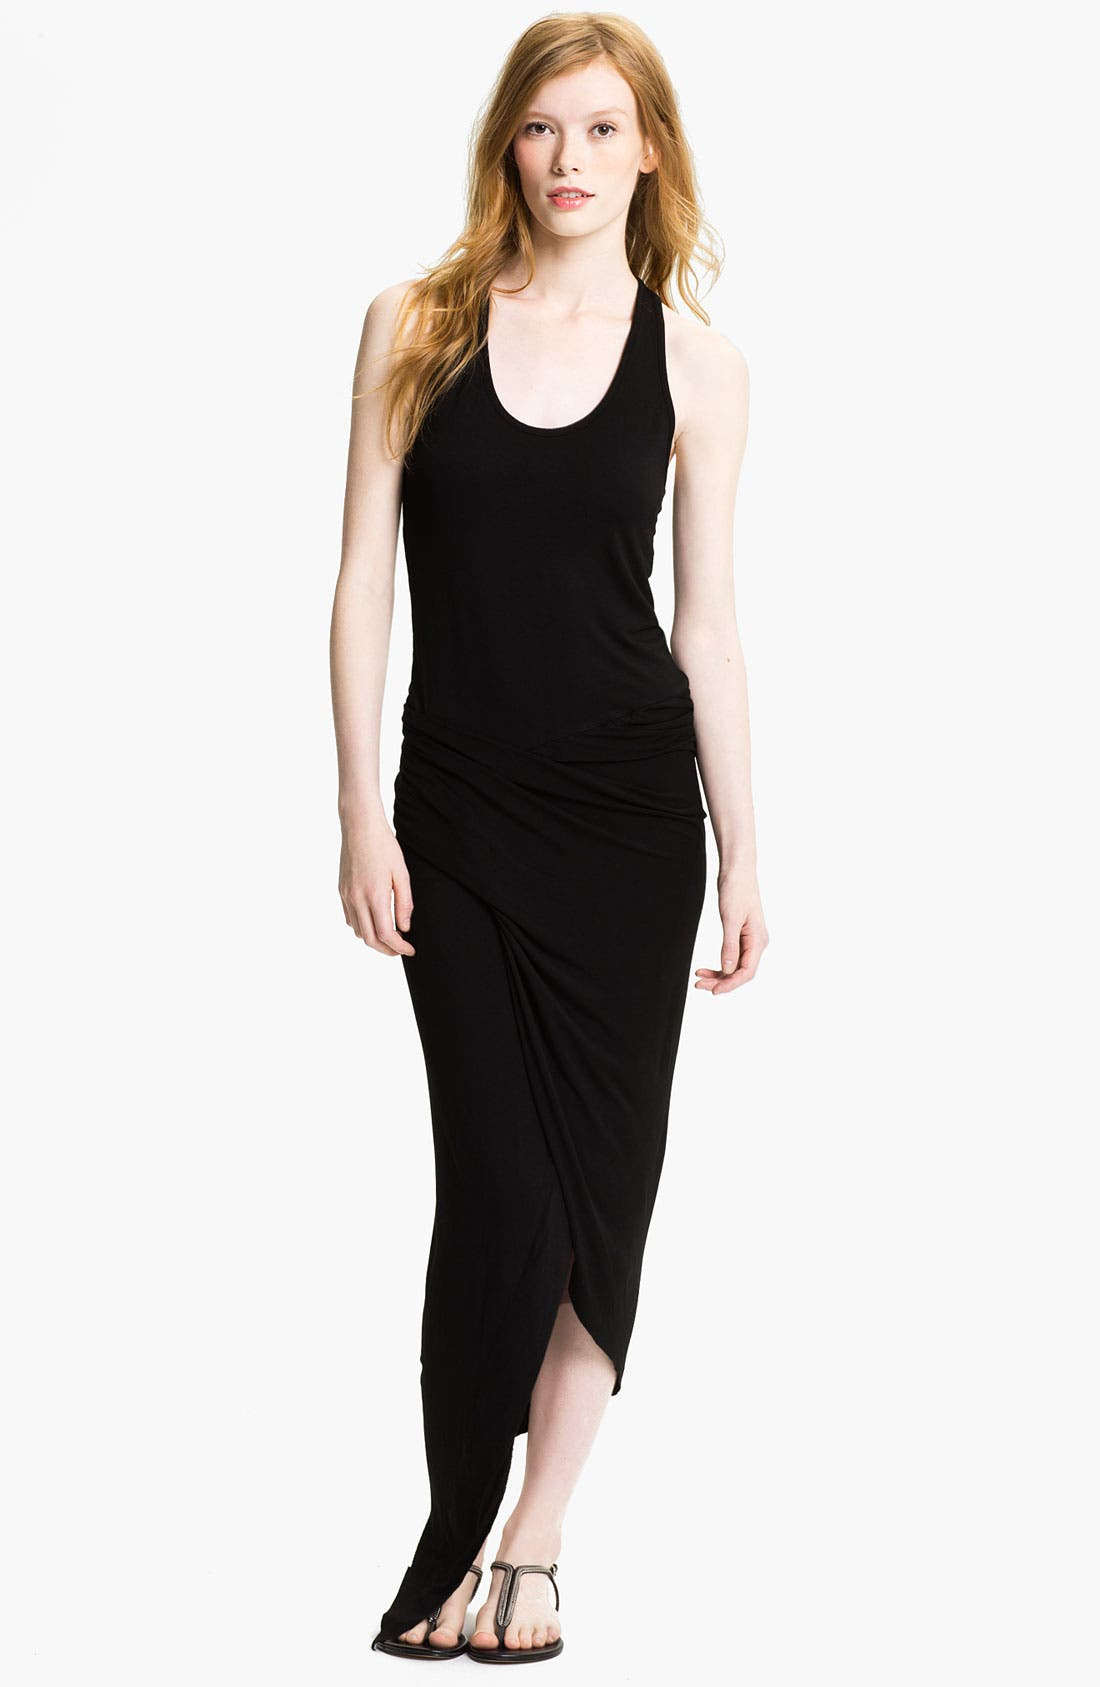 Alternate Image 1 Selected - Young, Fabulous & Broke 'Sassy' Faux Wrap Maxi Dress